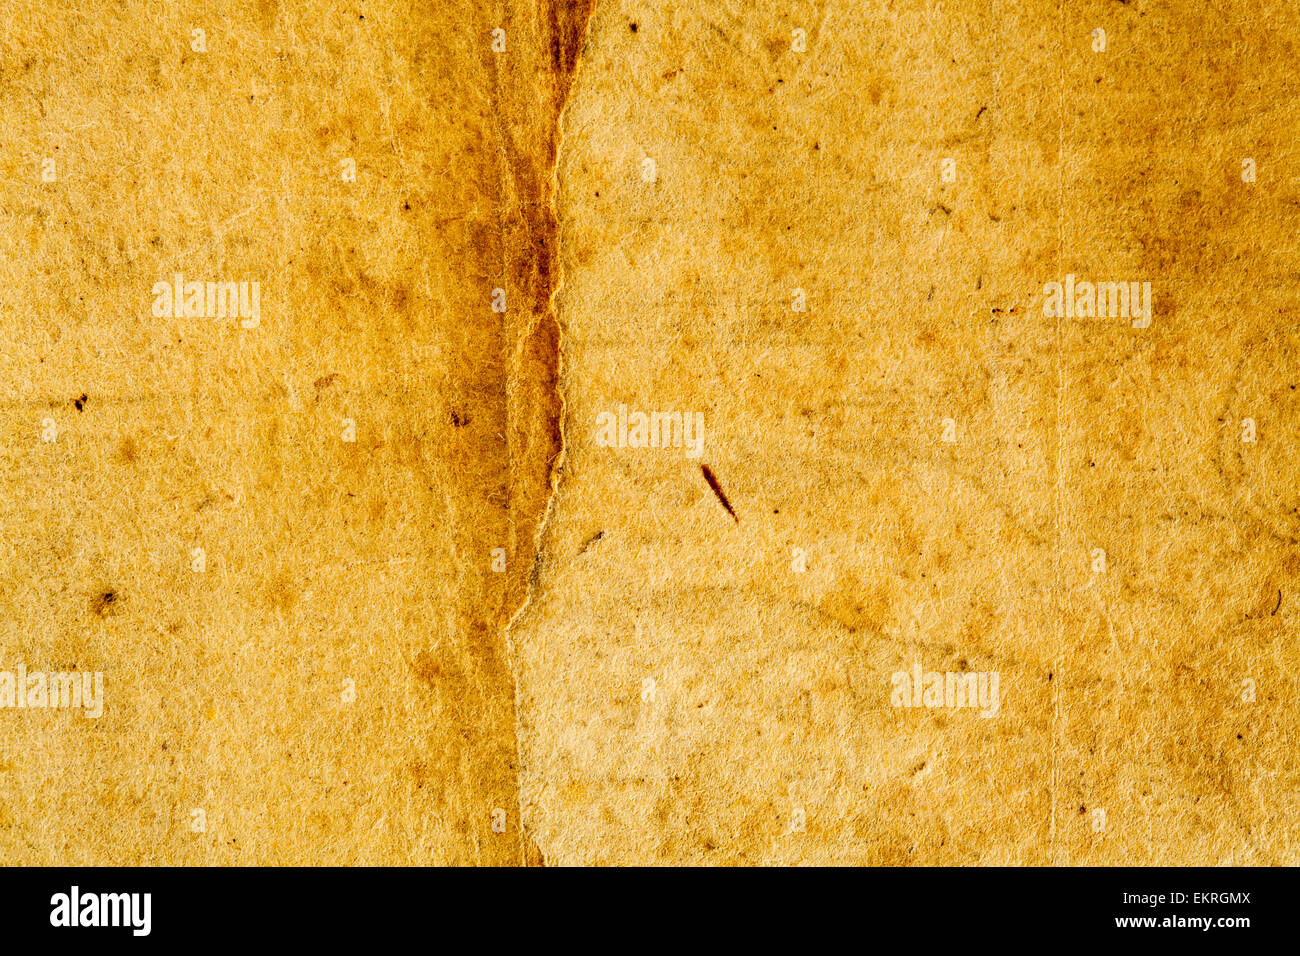 1614 Vintage Antique Retro French Parchment Paper Background in Beige Tan - Stock Image